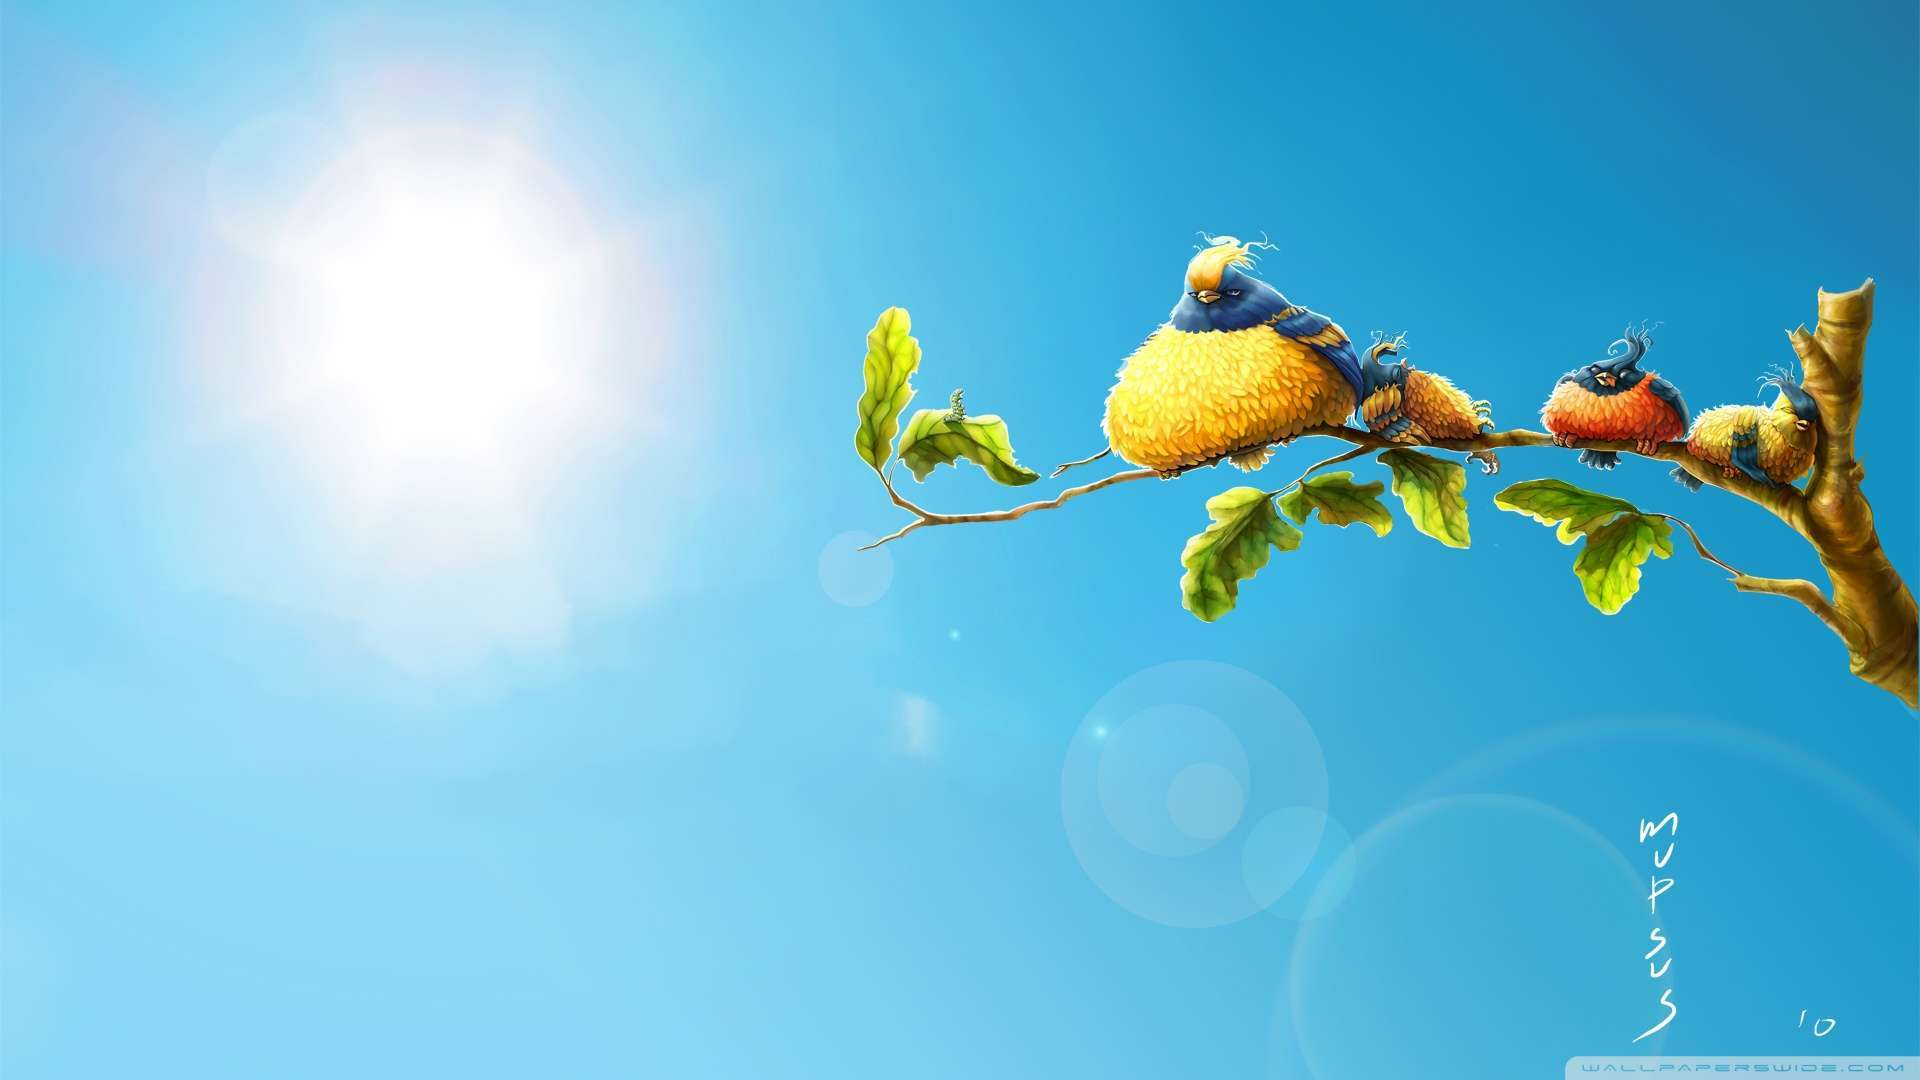 Funny Birds Wallpaper  Wide Screen Wallpaper 1080p,2K,4K